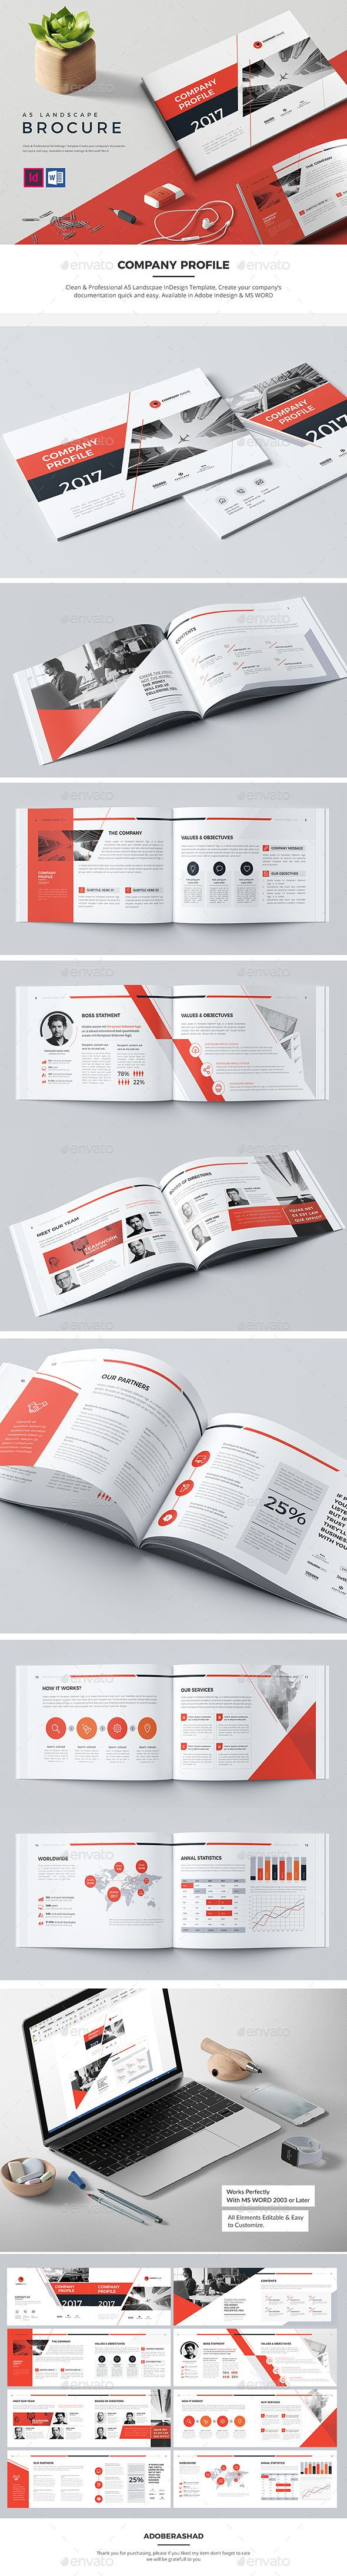 Landscape Company Profile Brochure — InDesign INDD #clean #red • Download ➝ https://graphicriver.net/item/landscape-company-profile-brochure/20007464?ref=pxcr